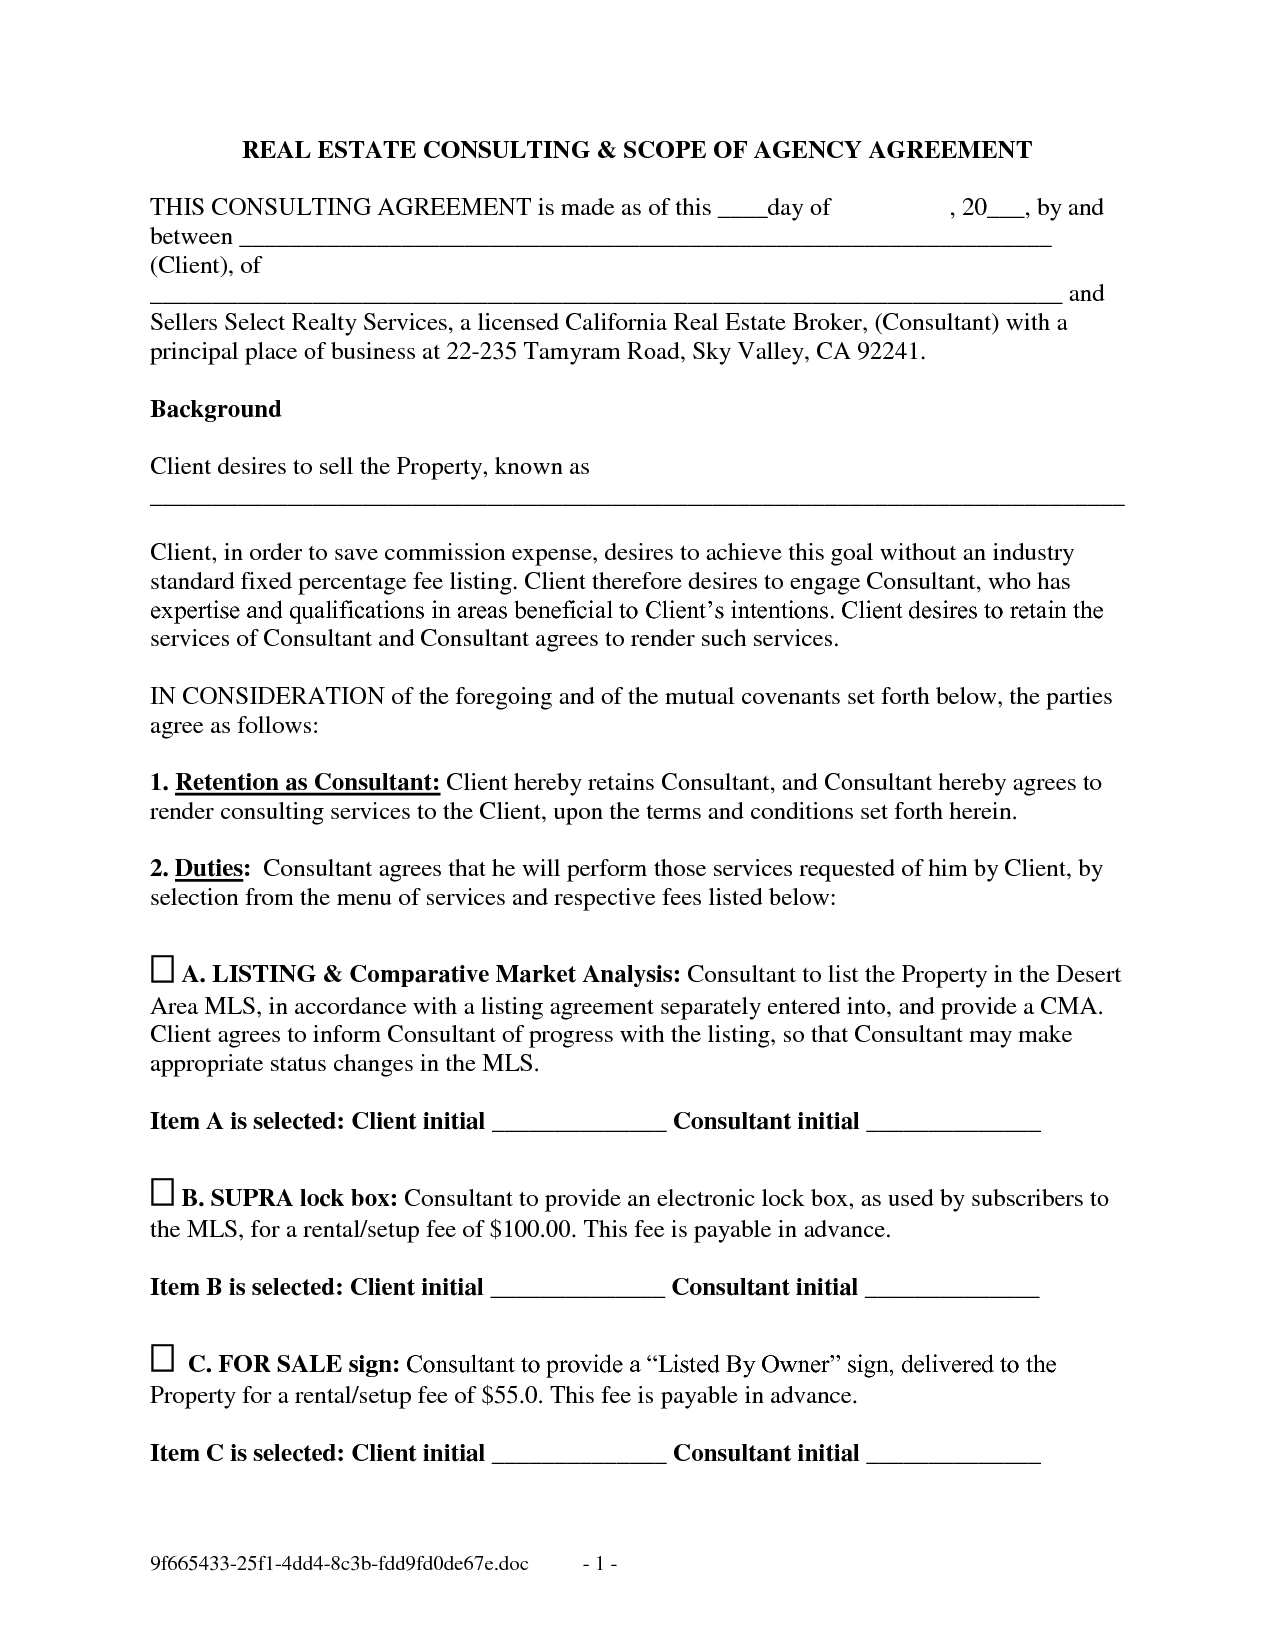 Property Buyout Agreement Form 99668 Free Printable Real Estate Purchase Agreement Solnet Sy